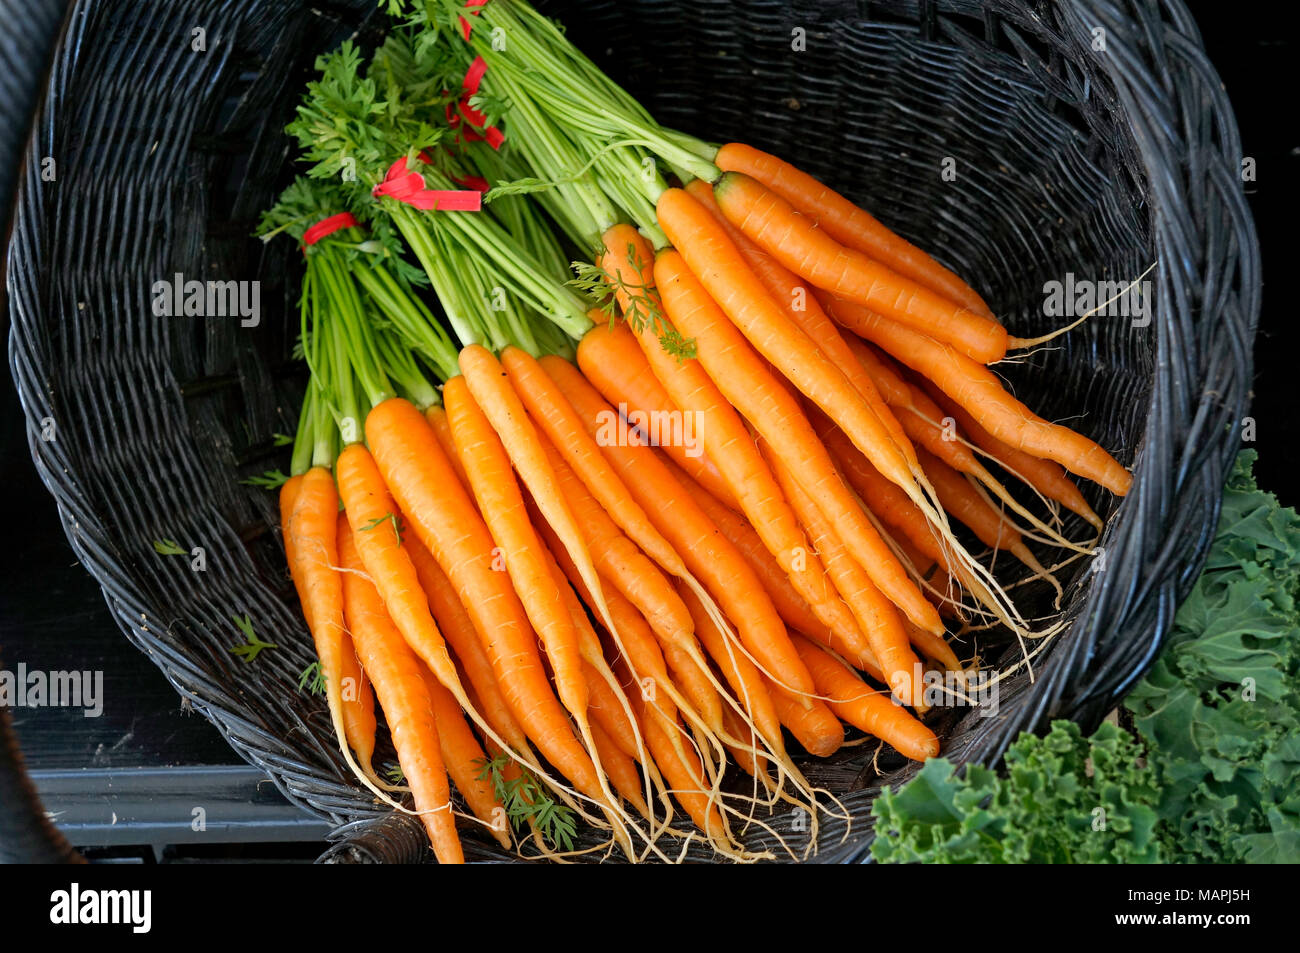 basket-full-of-bunches-of-fresh-carrots-